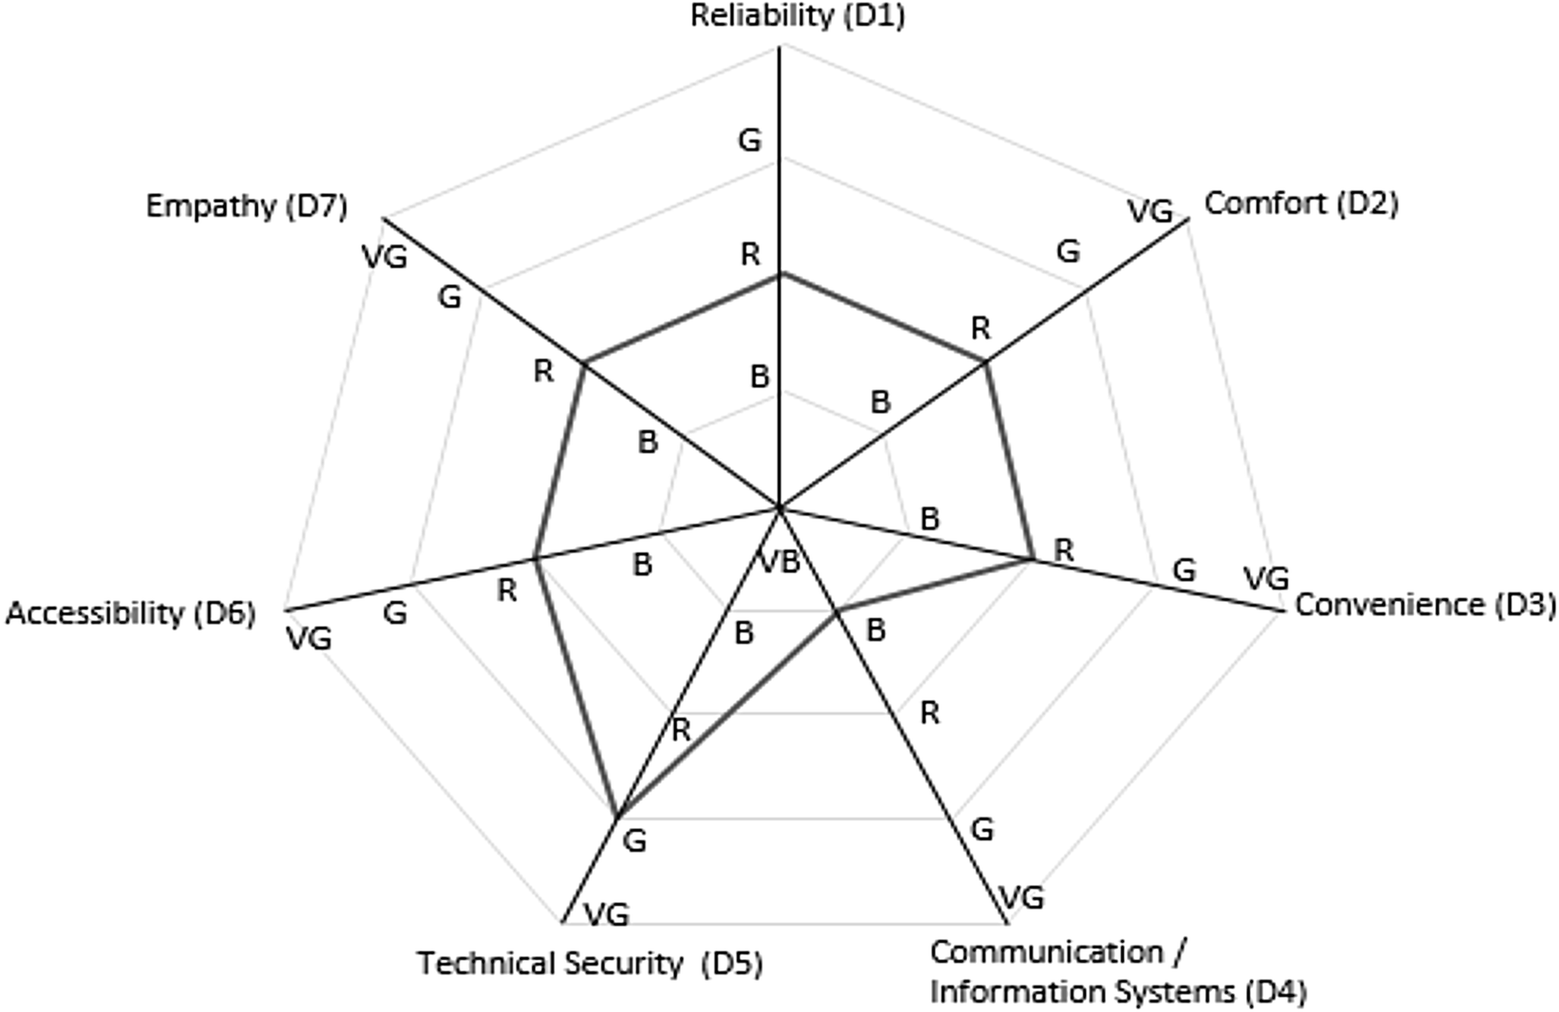 Evaluation of Quality in Public Transport Services: The Use